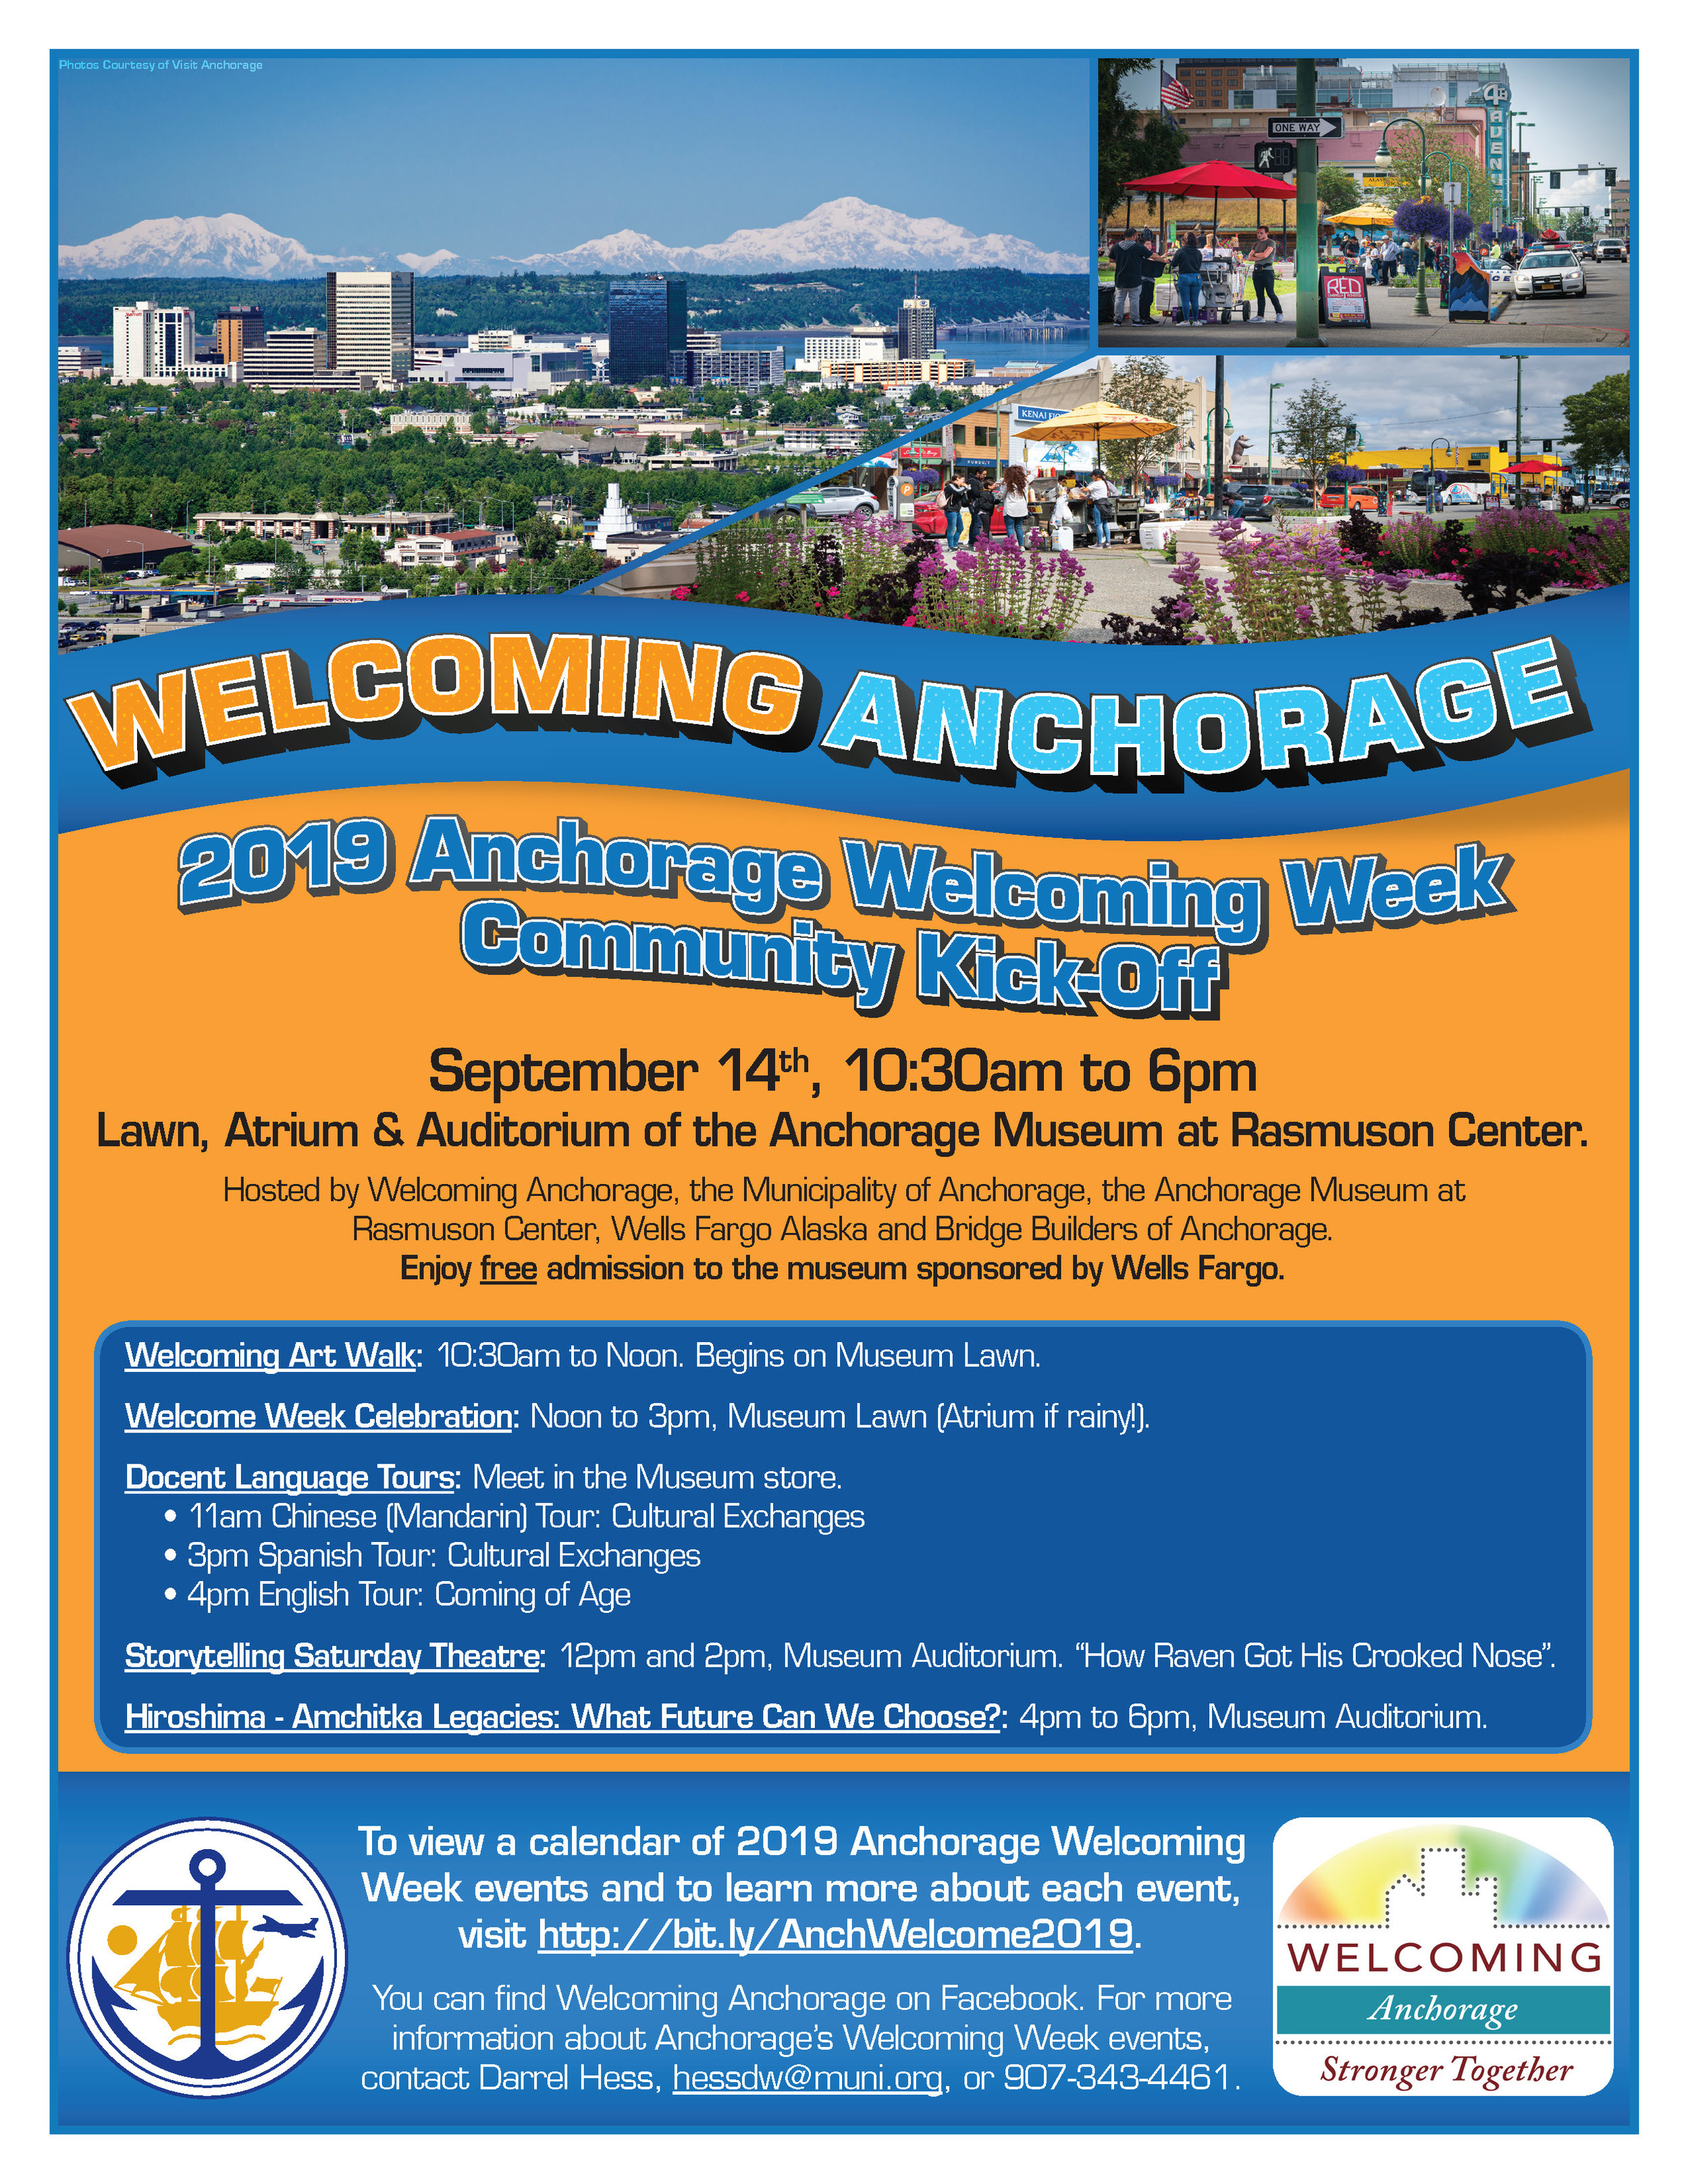 OMB 2019 Anchorage Welcoming Week Kickoff.jpg